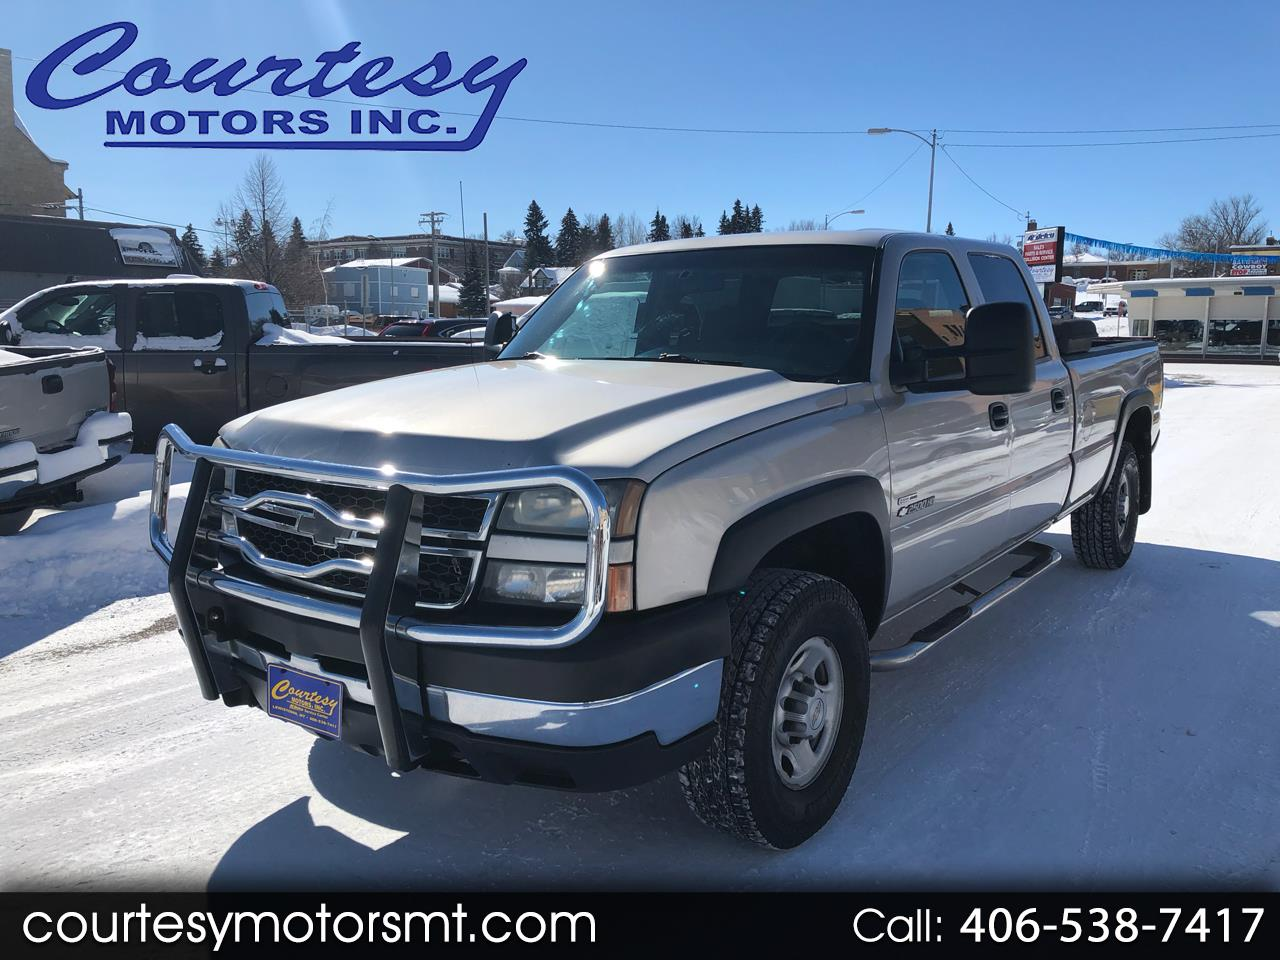 2007 Chevrolet Silverado Classic 2500HD Work Truck Crew Cab Long Box 4WD